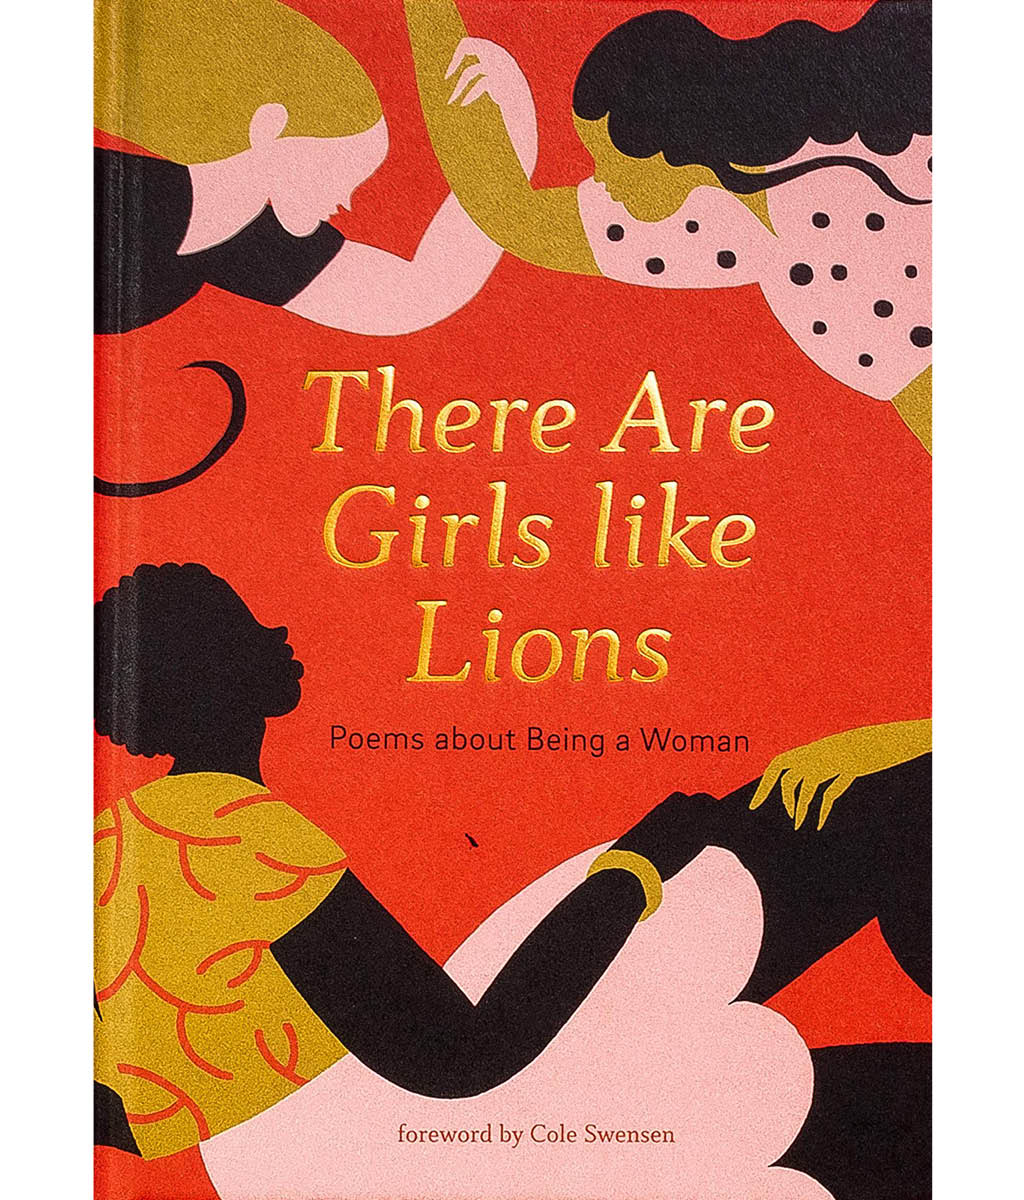 There are Girls like Lions by Cole Swensen